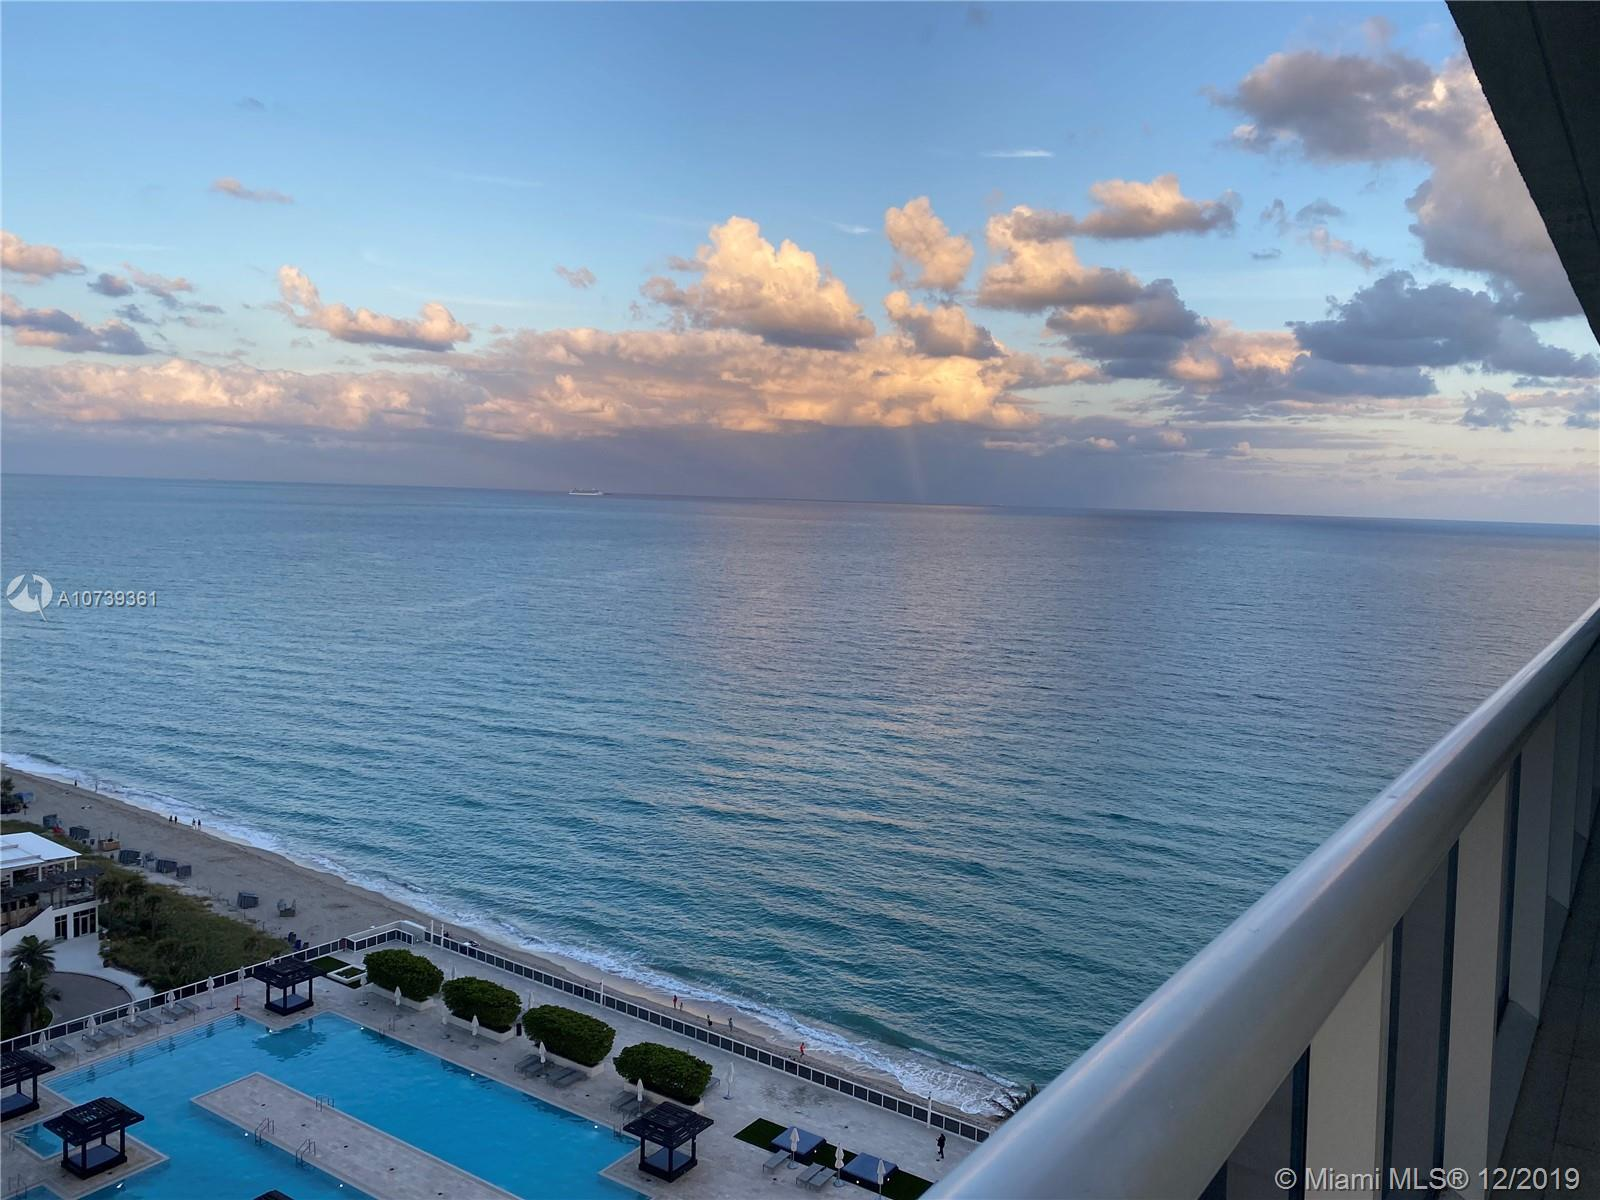 1830 S OCEAN DR # 2208, Hallandale Beach, Florida 33009, 2 Bedrooms Bedrooms, ,2 BathroomsBathrooms,Residential Lease,For Rent,1830 S OCEAN DR # 2208,A10739361